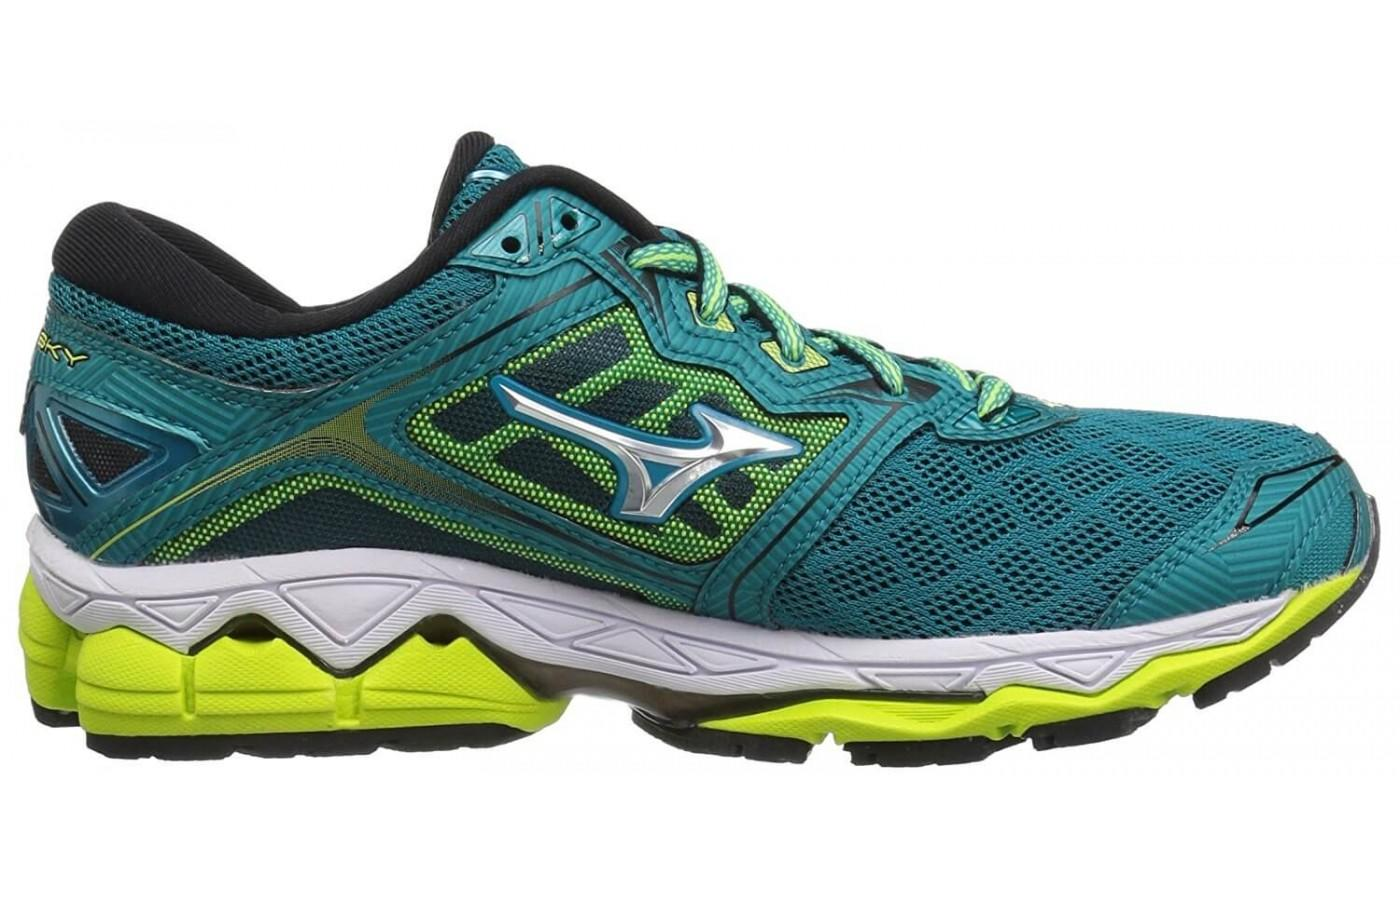 Mizuno Wave Sky Heel to Toe